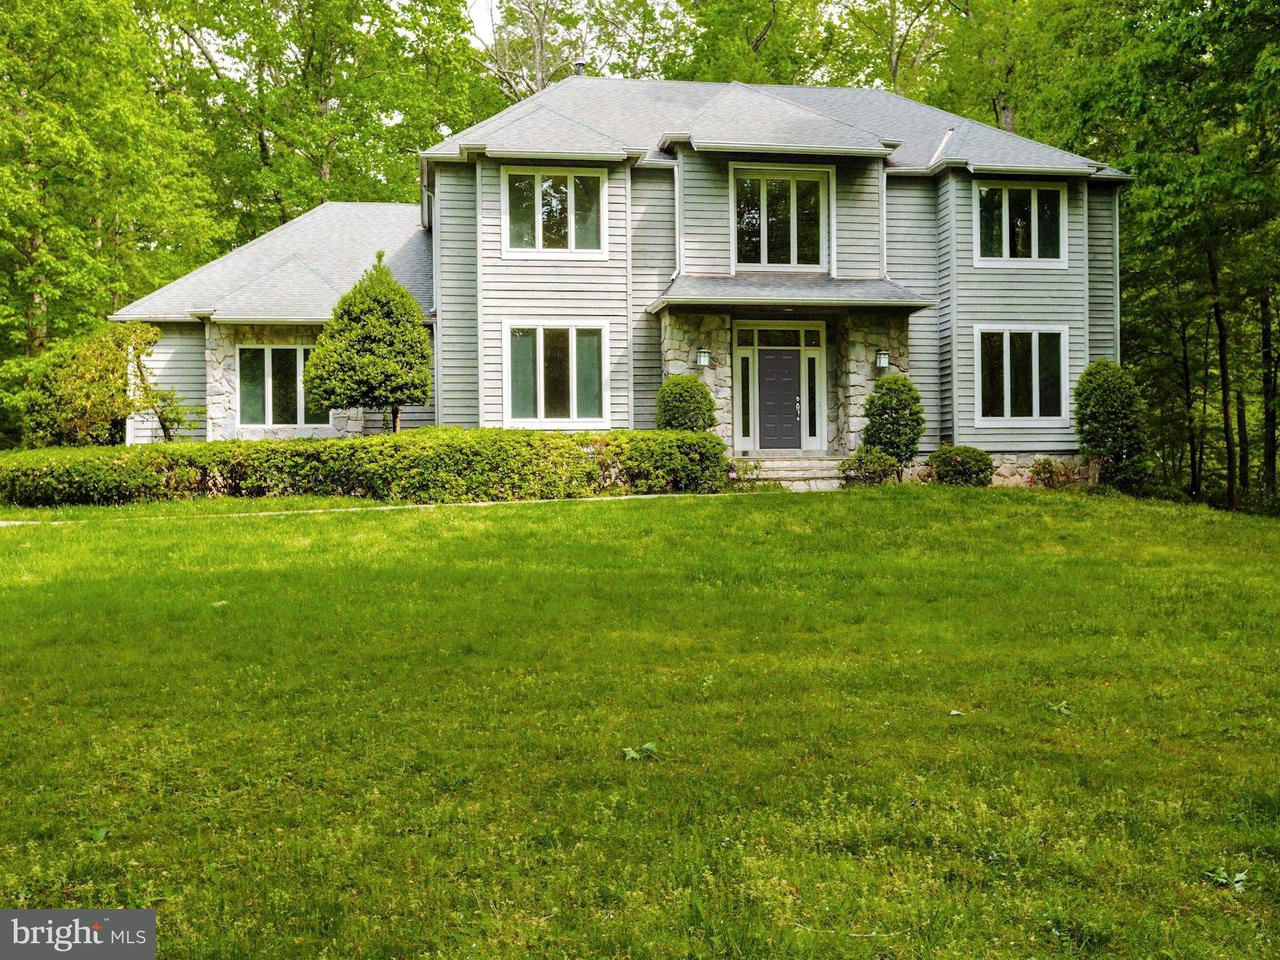 Single Family Home for Sale at 974 Millwood Lane 974 Millwood Lane Great Falls, Virginia 22066 United States